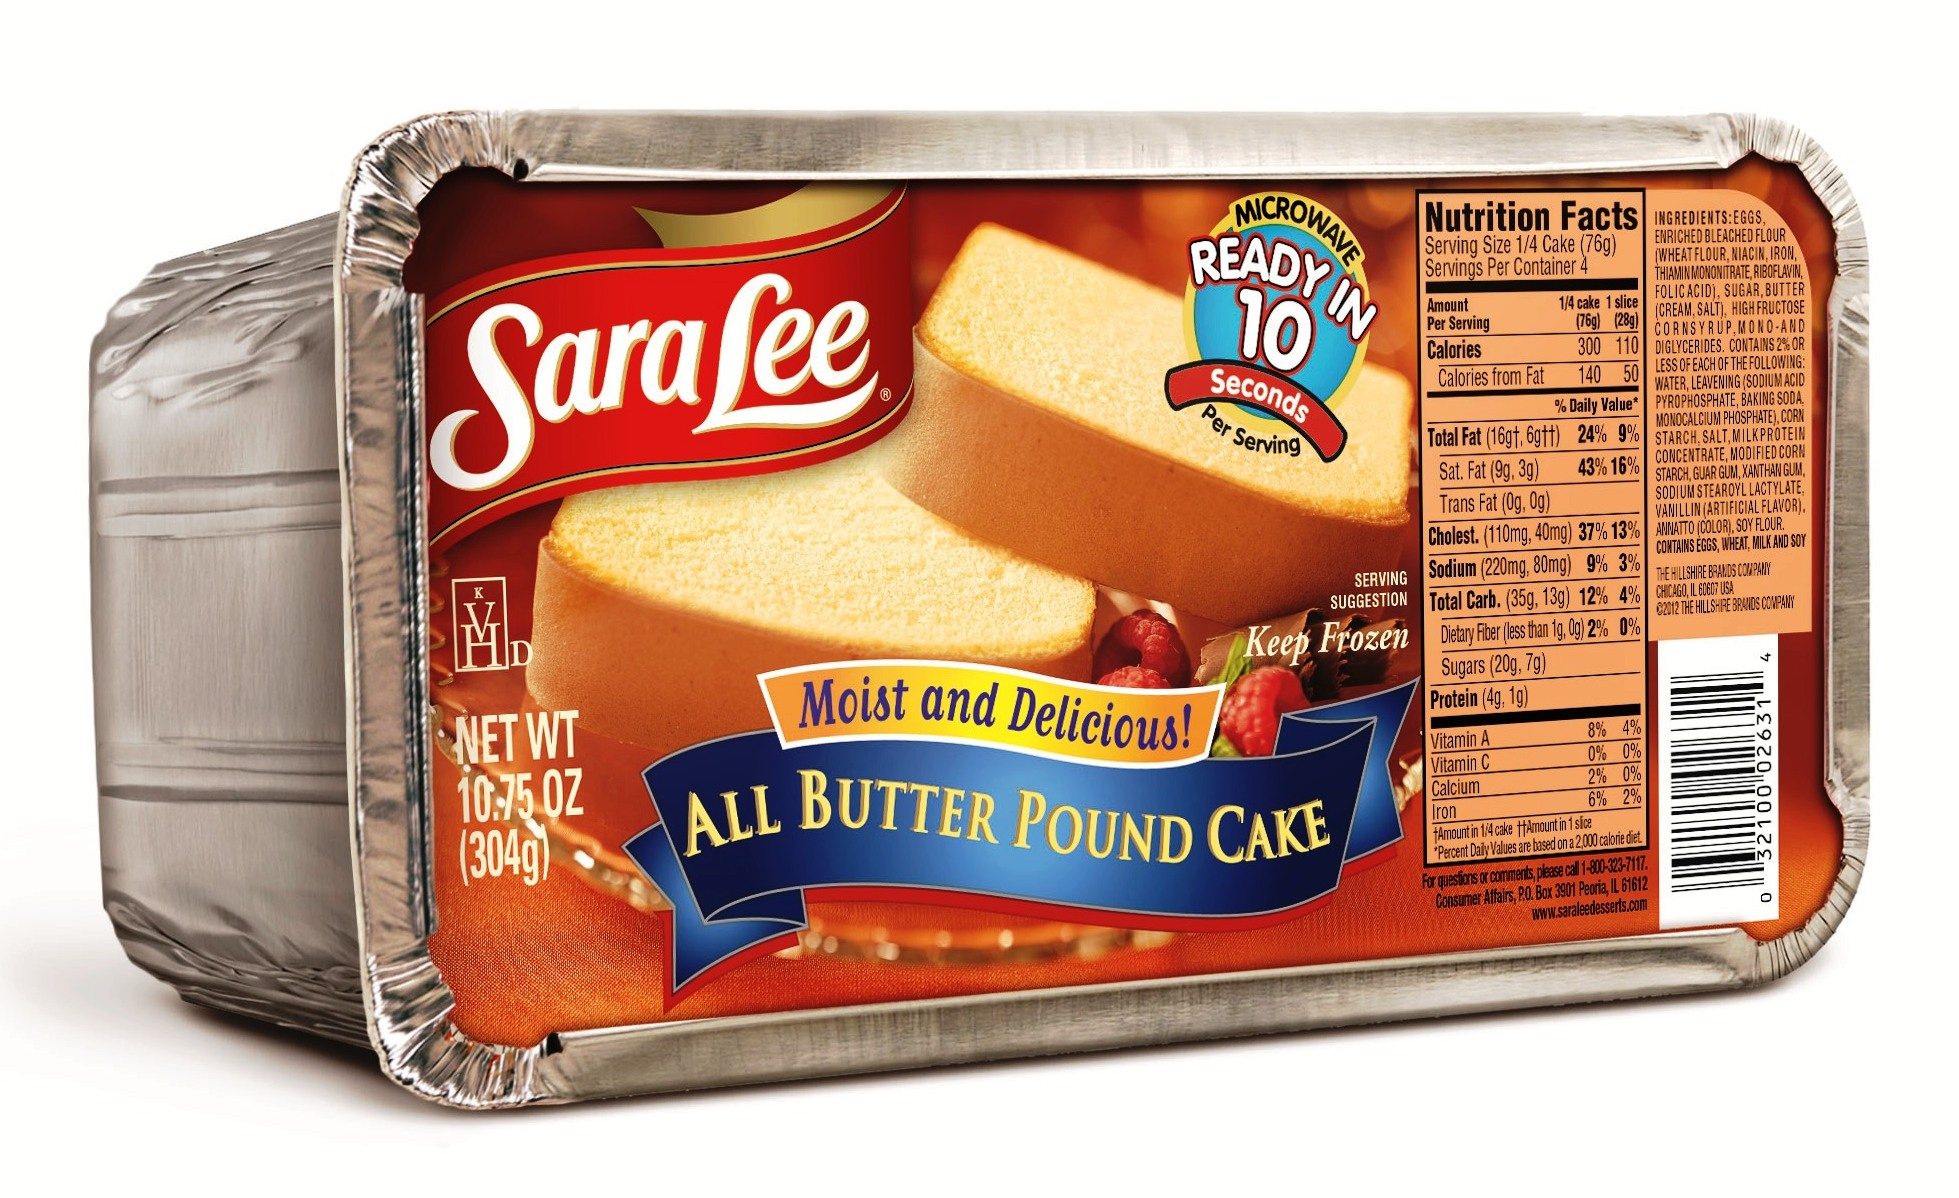 Sara Lee Butter Pound Cake